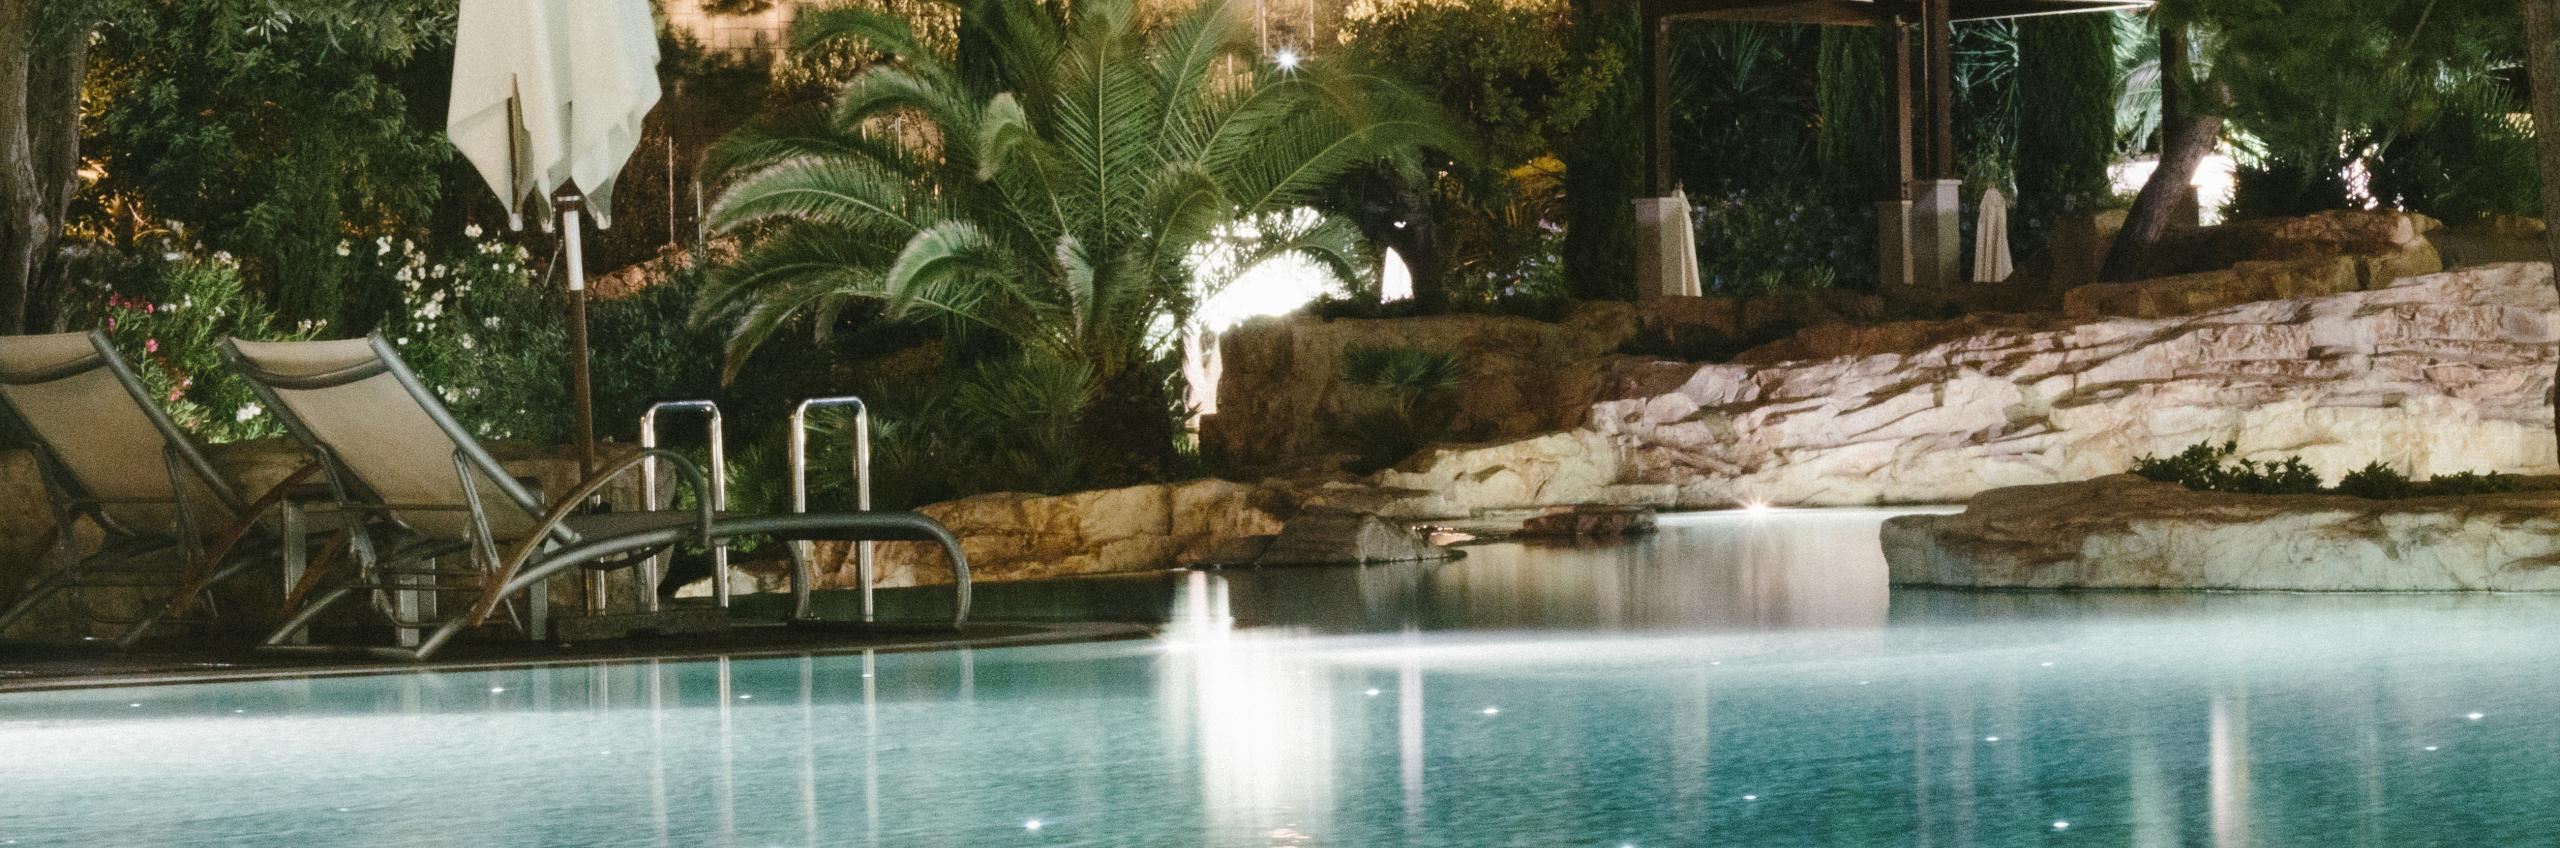 Amfora's Cascades pool at night